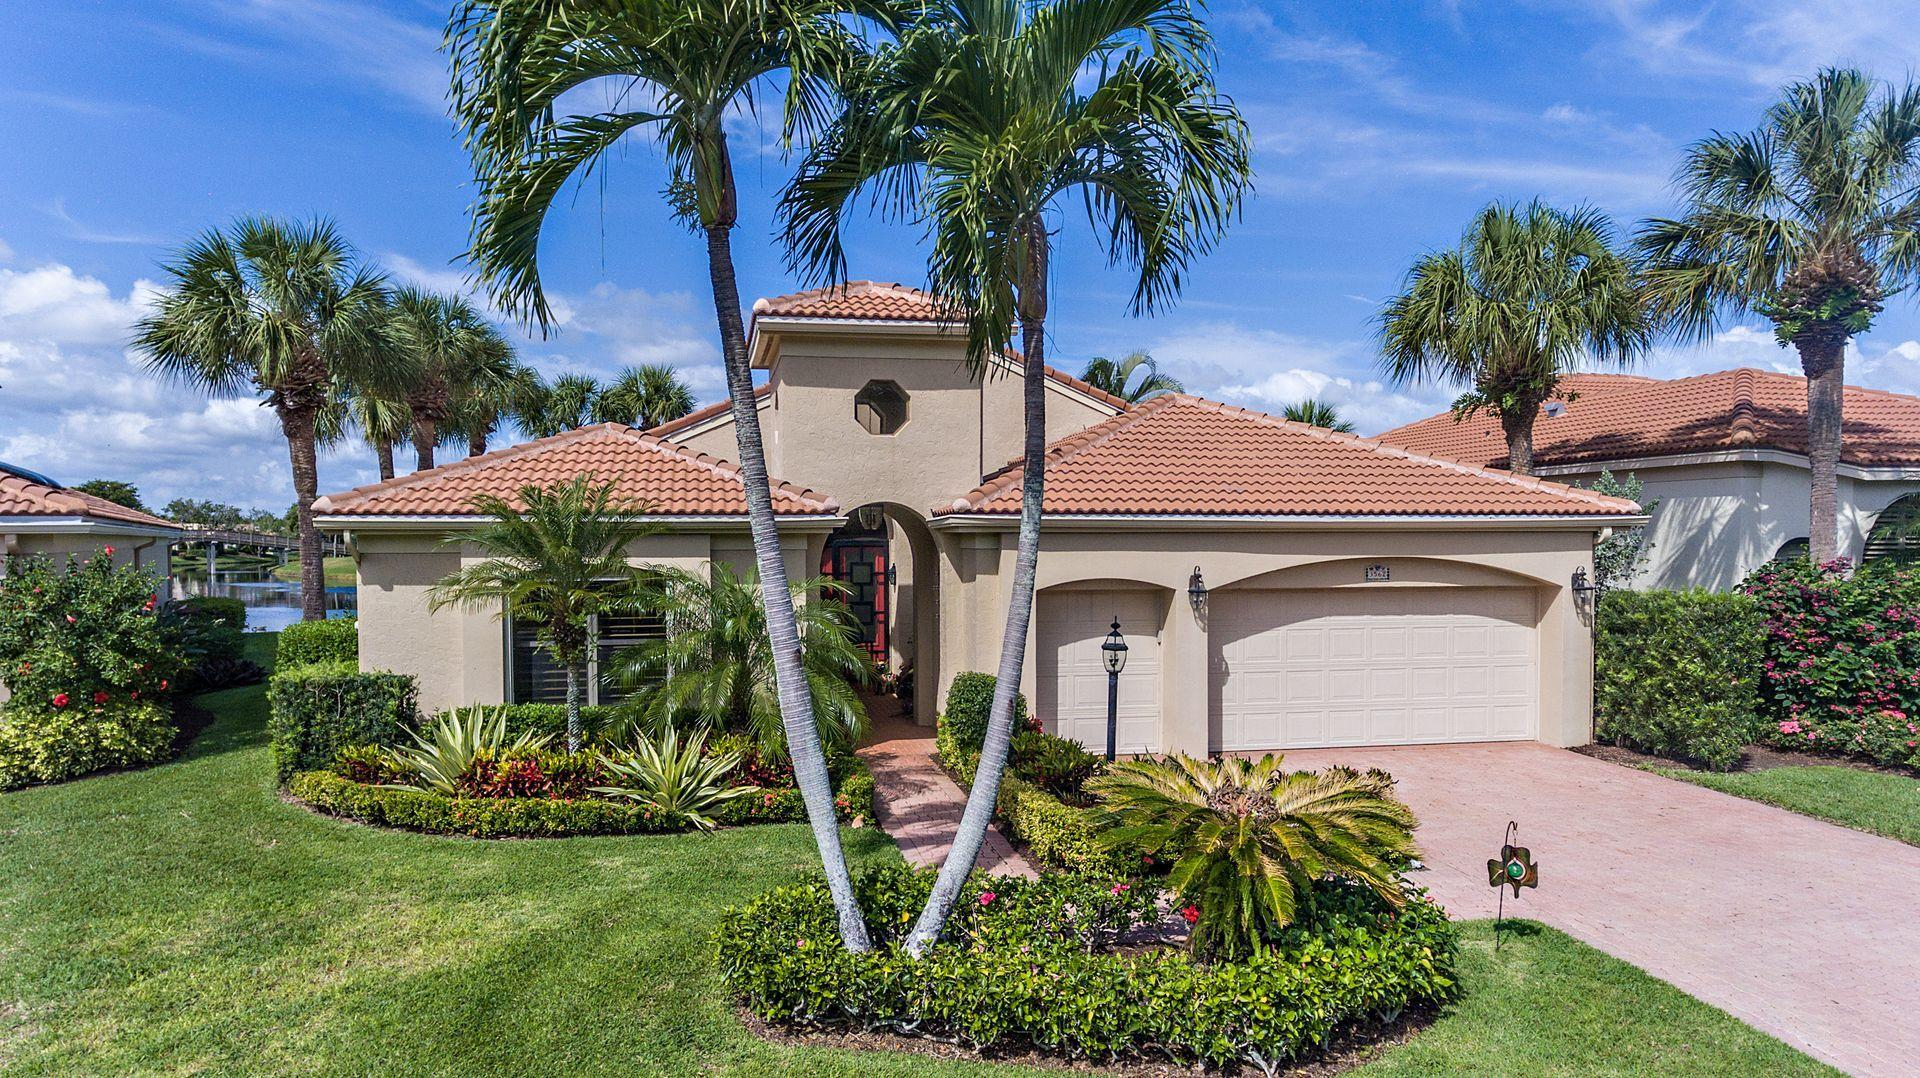 3562 Lantern Bay Drive, Jupiter, Florida 33477, 3 Bedrooms Bedrooms, ,2.1 BathroomsBathrooms,A,Single family,Lantern Bay,RX-10609775